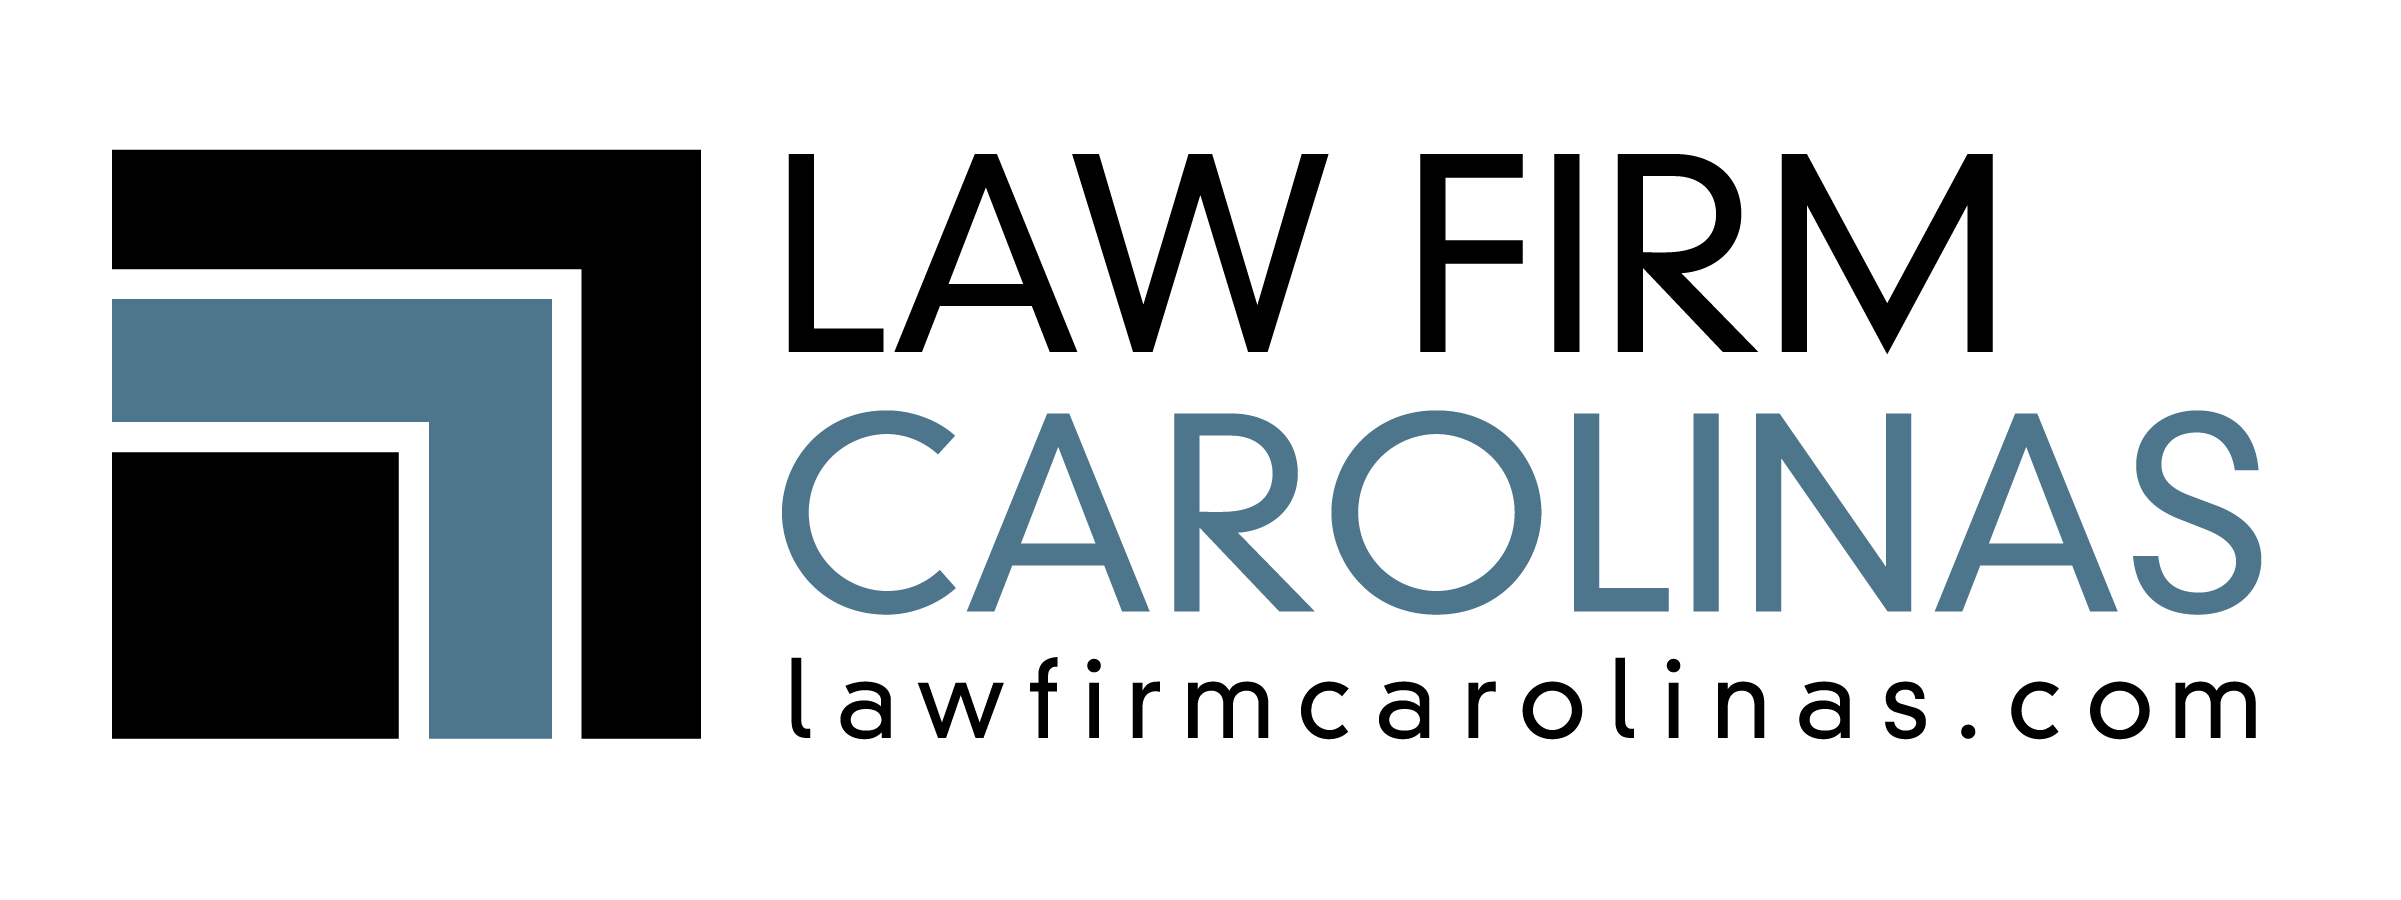 Law Firm Carolinas